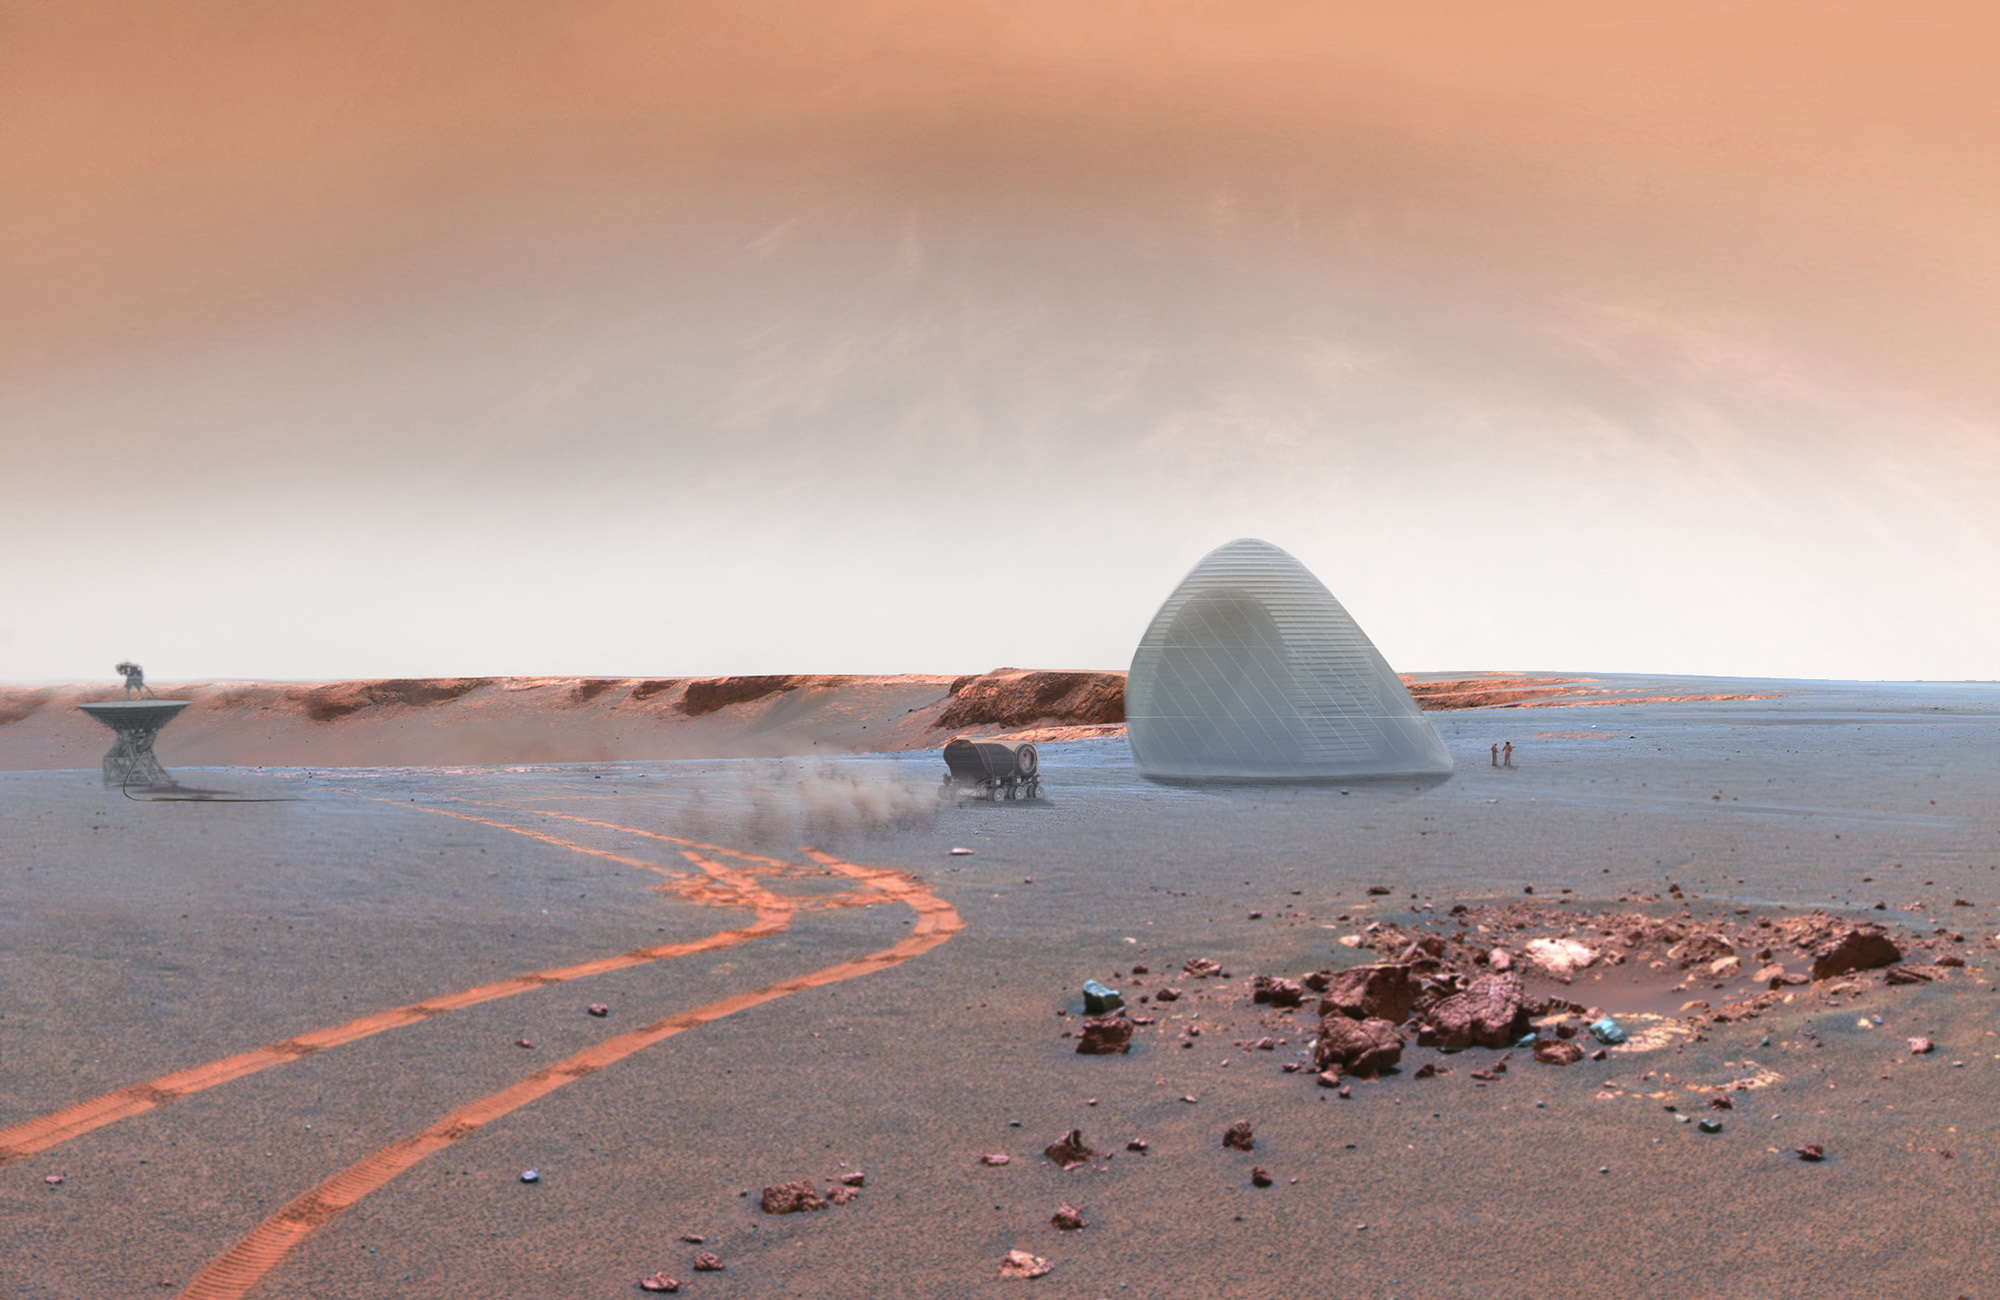 Mars Ice House Wide-angle view